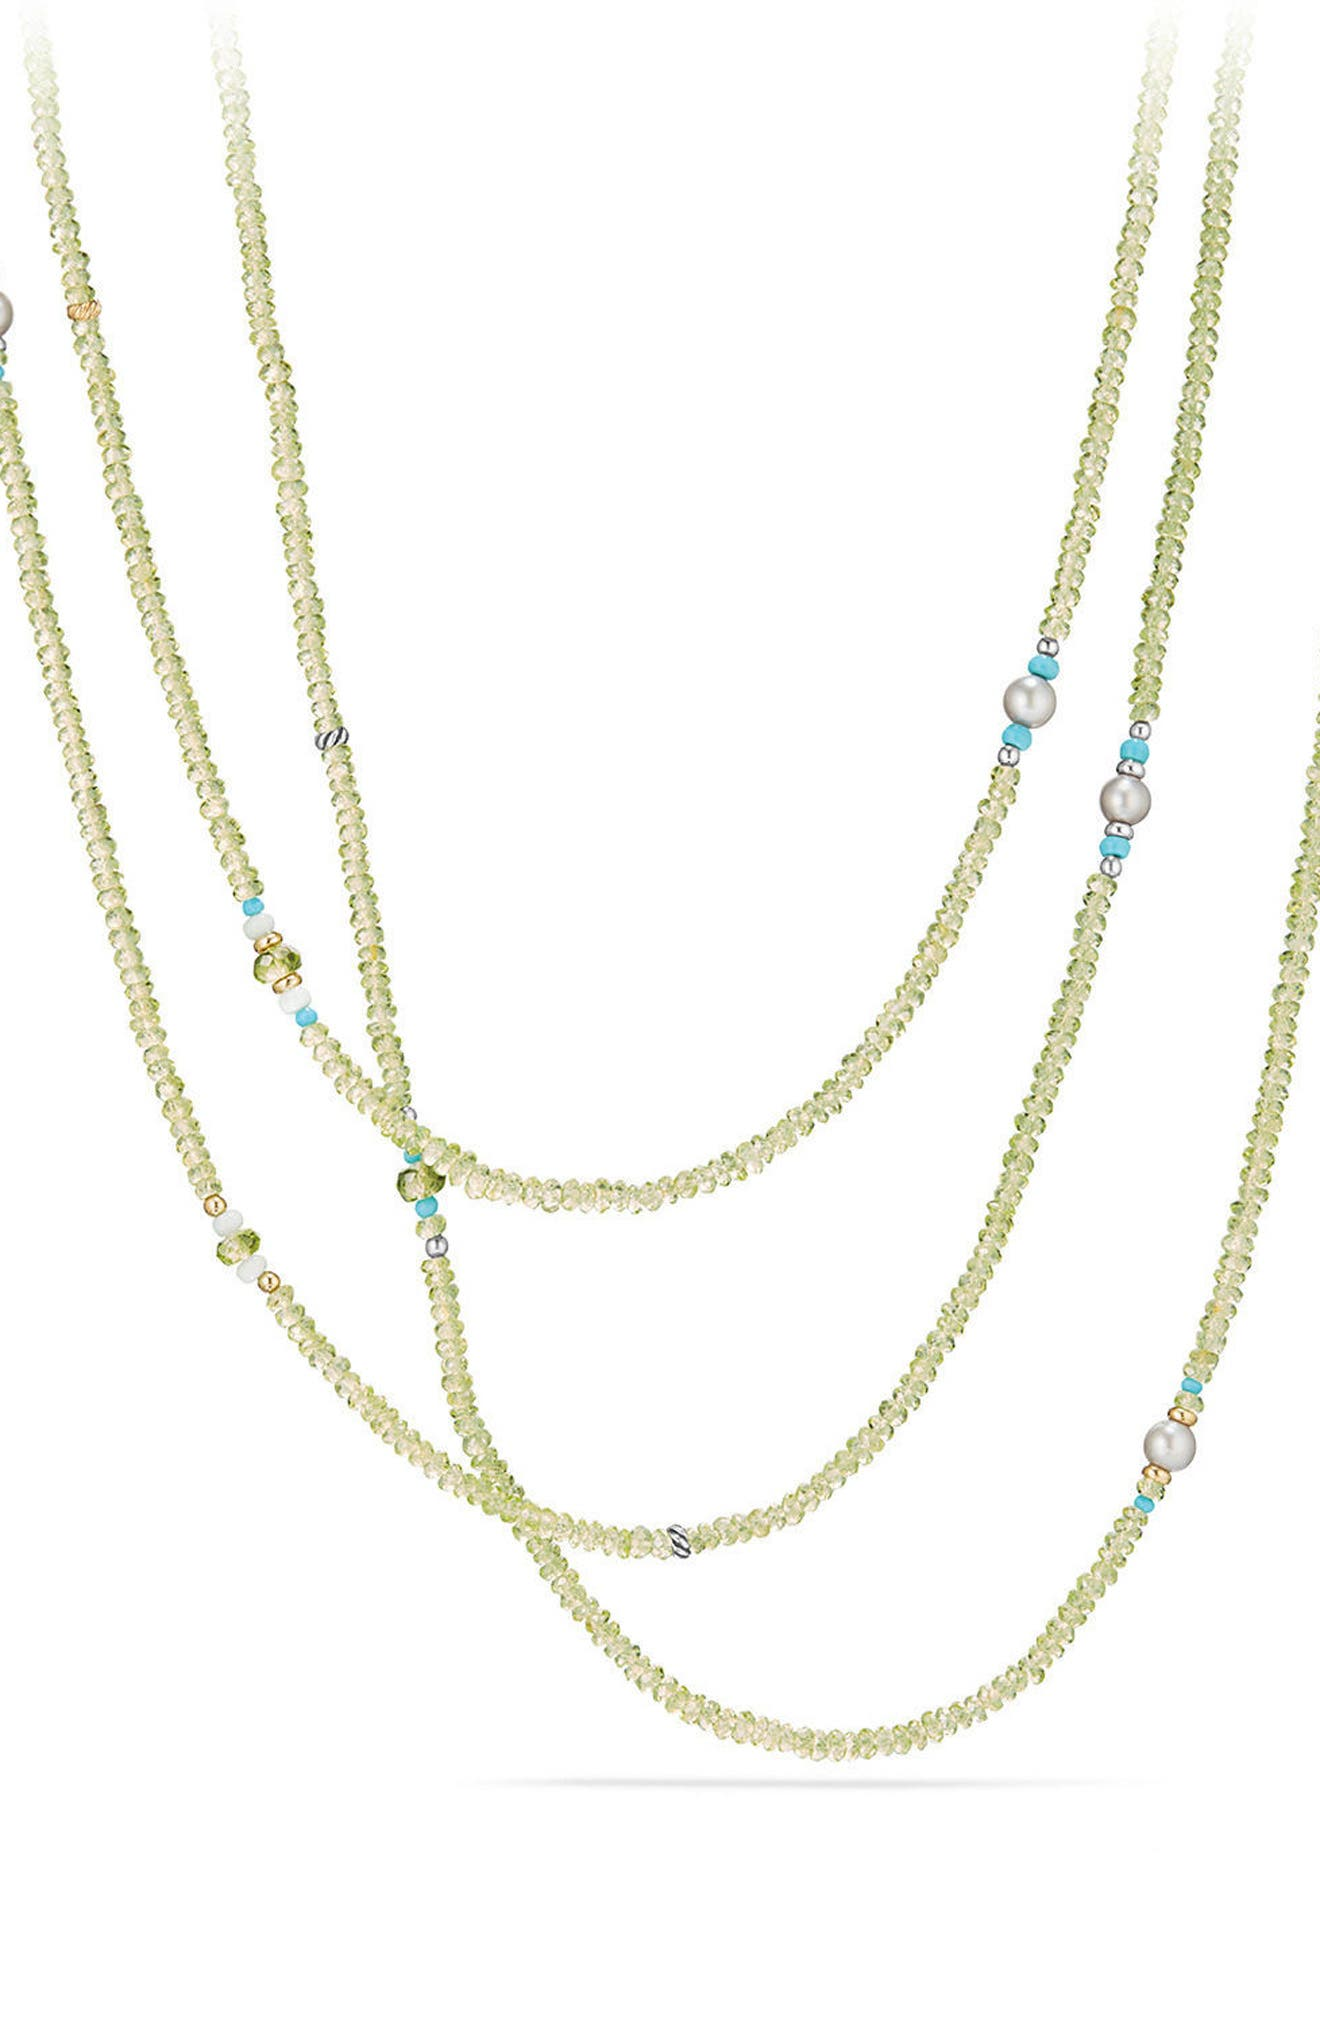 Mustique Tweejoux Beaded Necklace,                             Main thumbnail 1, color,                             Silver/ Gold/ Multi